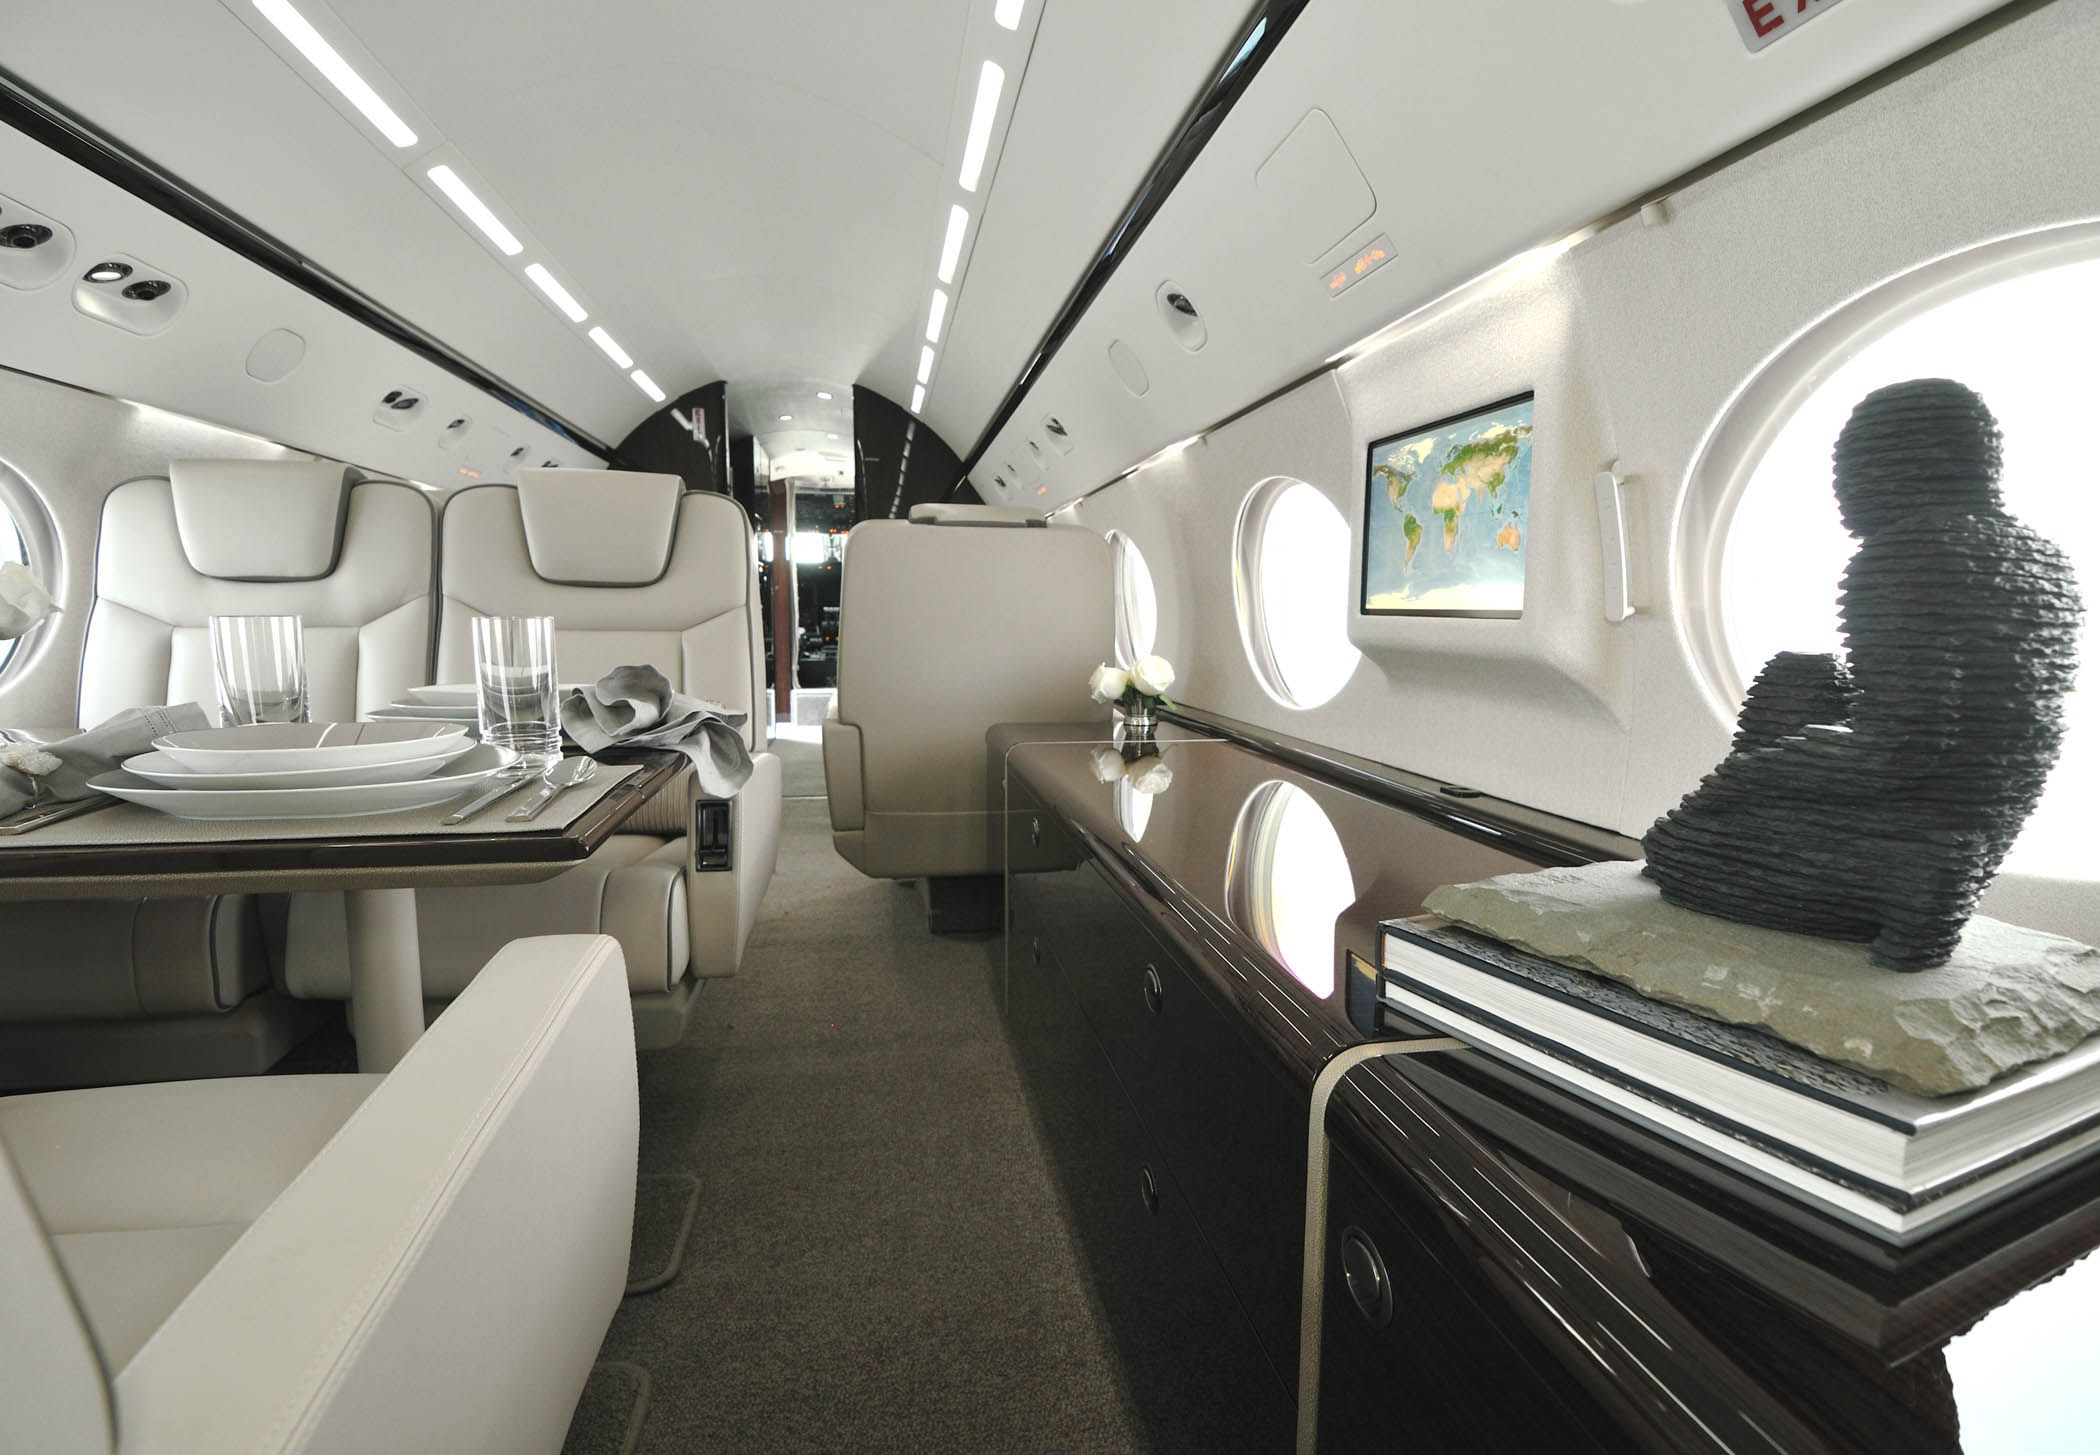 Luxurious Givsp Private Jet Interior Completion By International